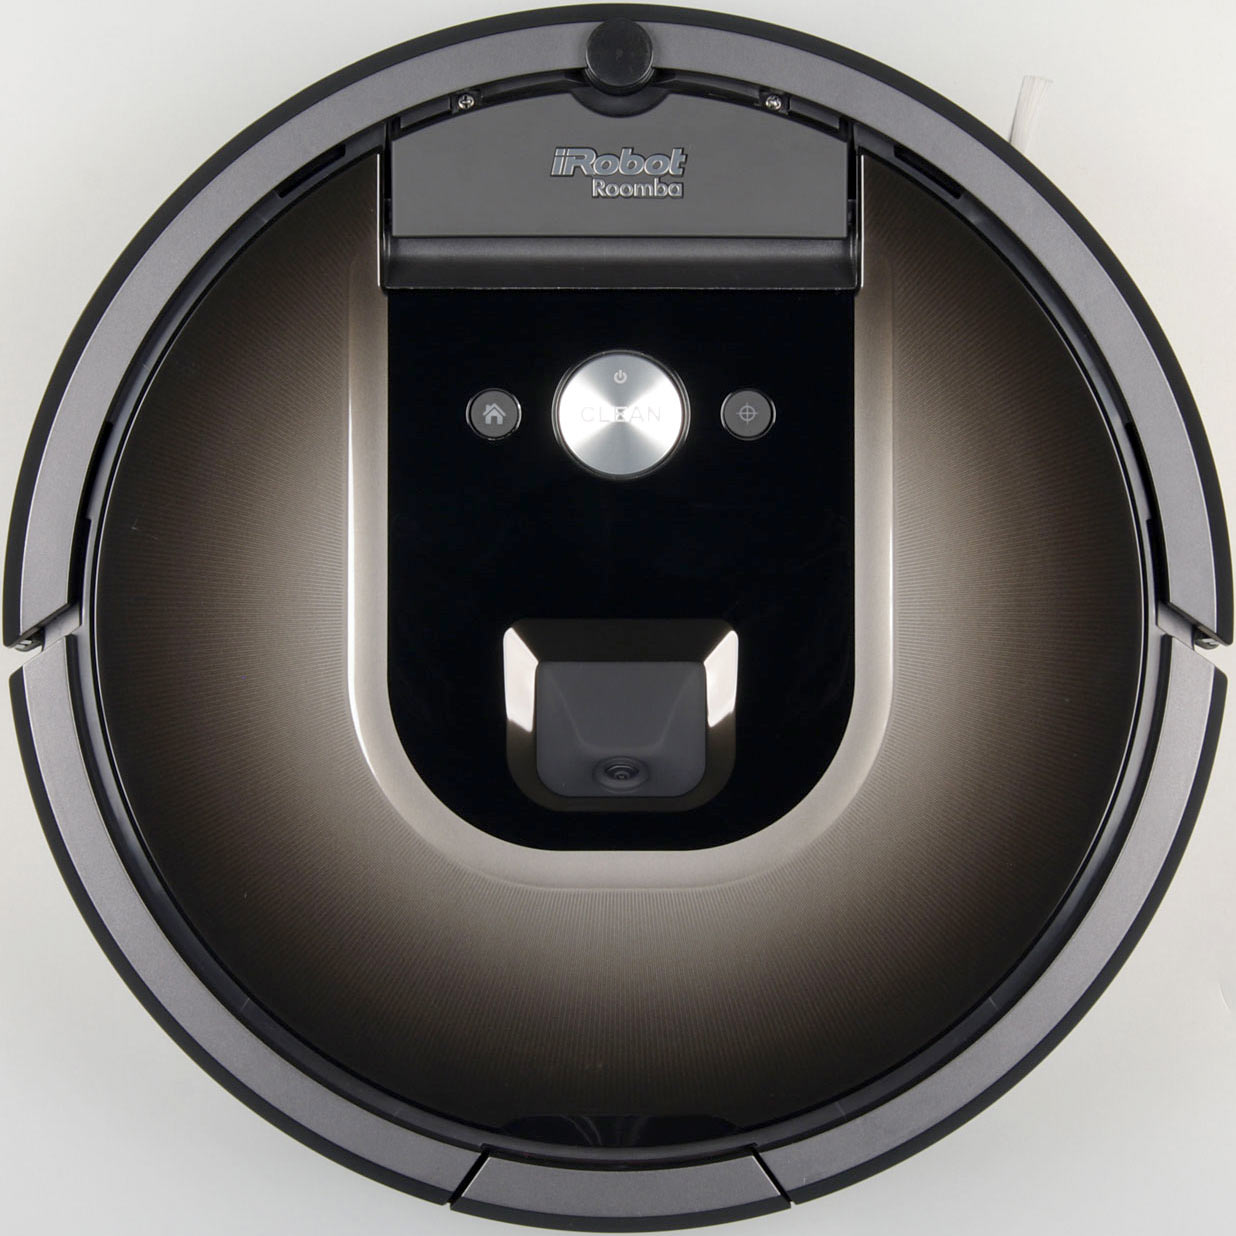 iRobot Roomba 980 top